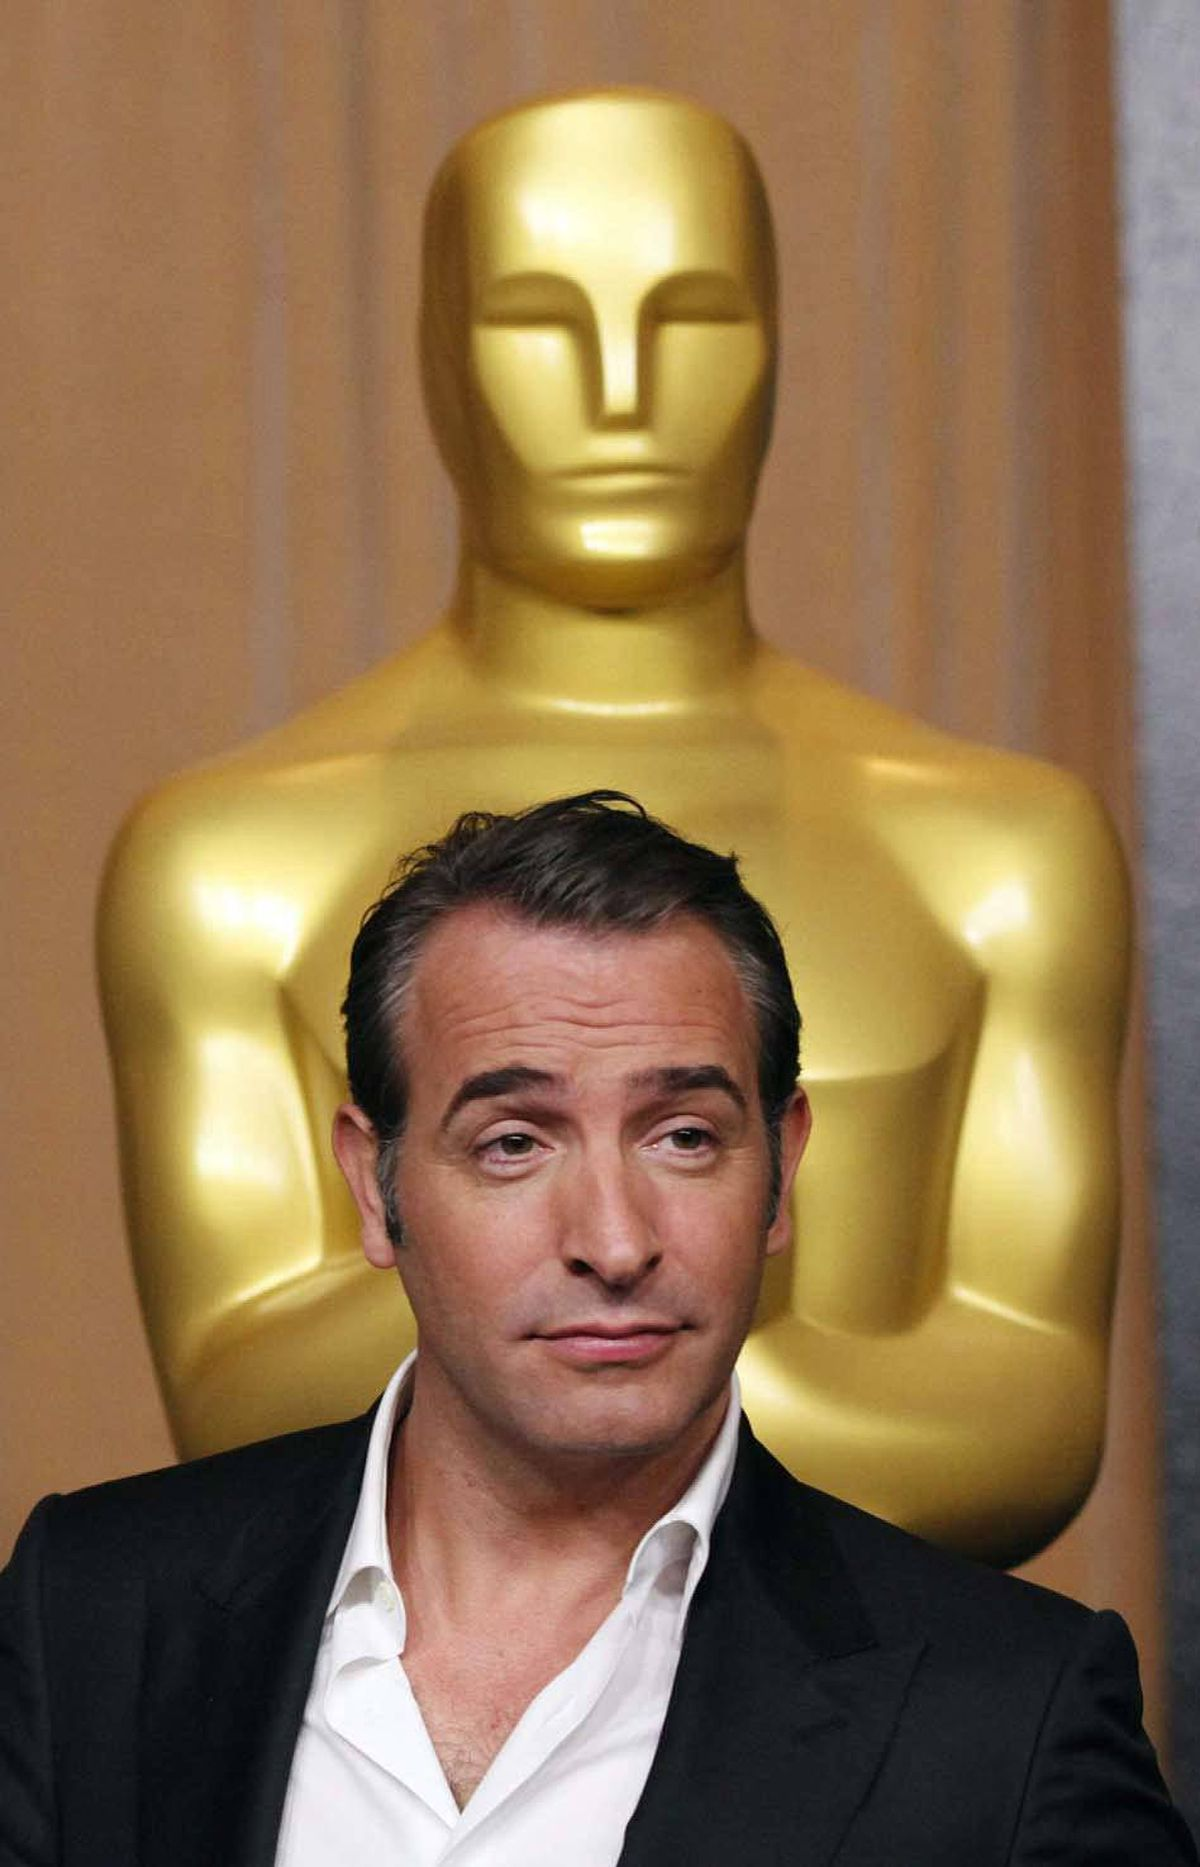 A Gallicly confident Jean Dujardin arrives at the 84th Academy Awards nominees luncheon in Beverly Hills on Monday.